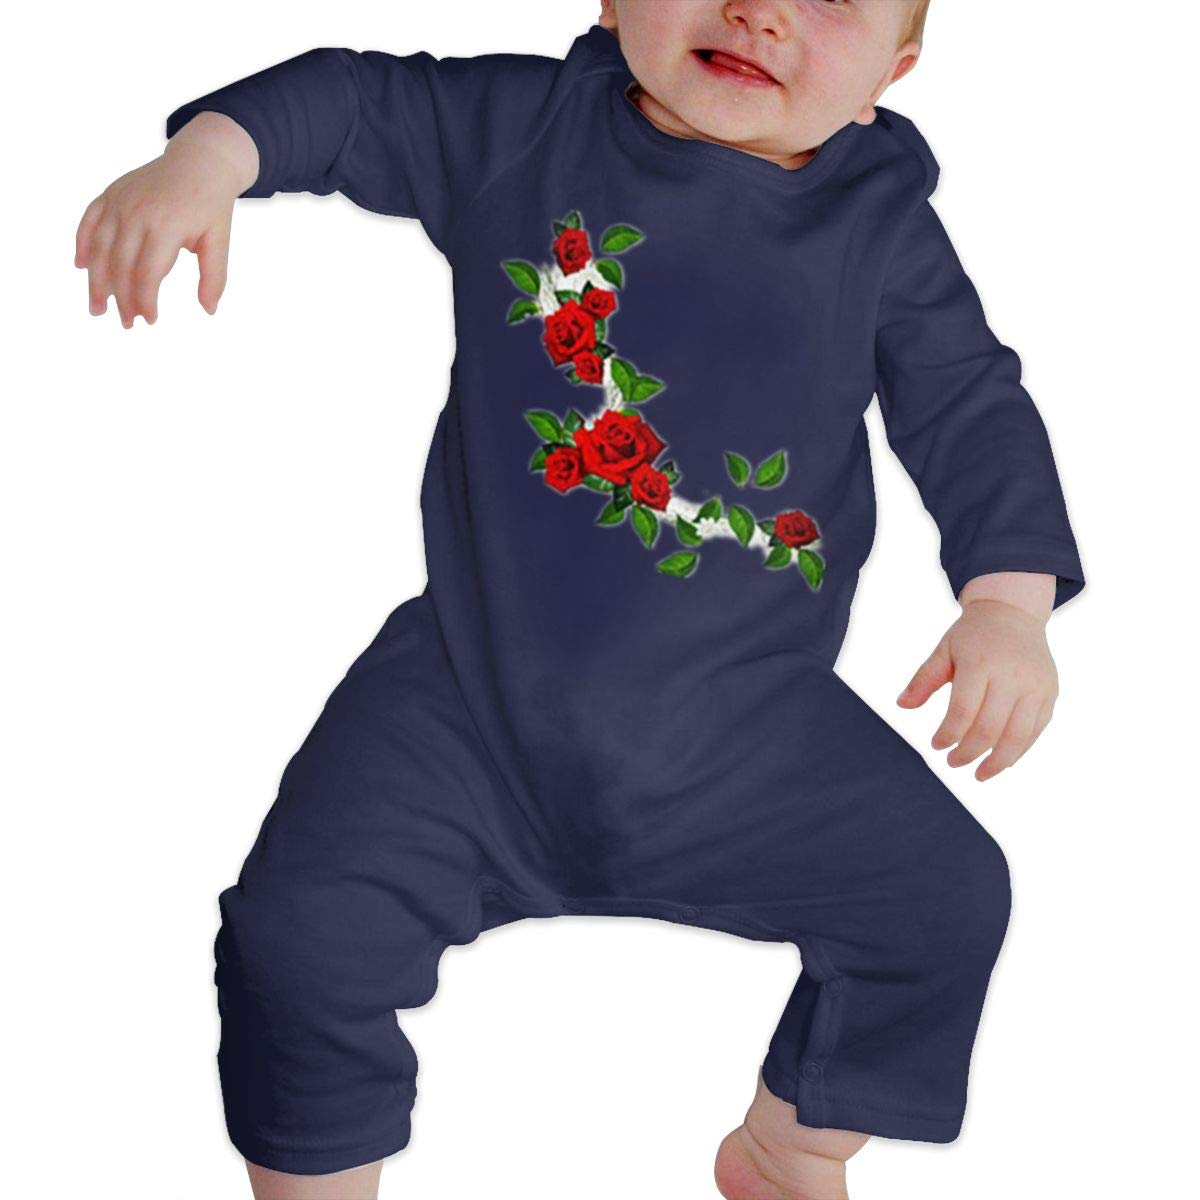 A String Rose Unisex Long Sleeve Baby Gown Baby Bodysuit Unionsuit Footed Pajamas Romper Jumpsuit